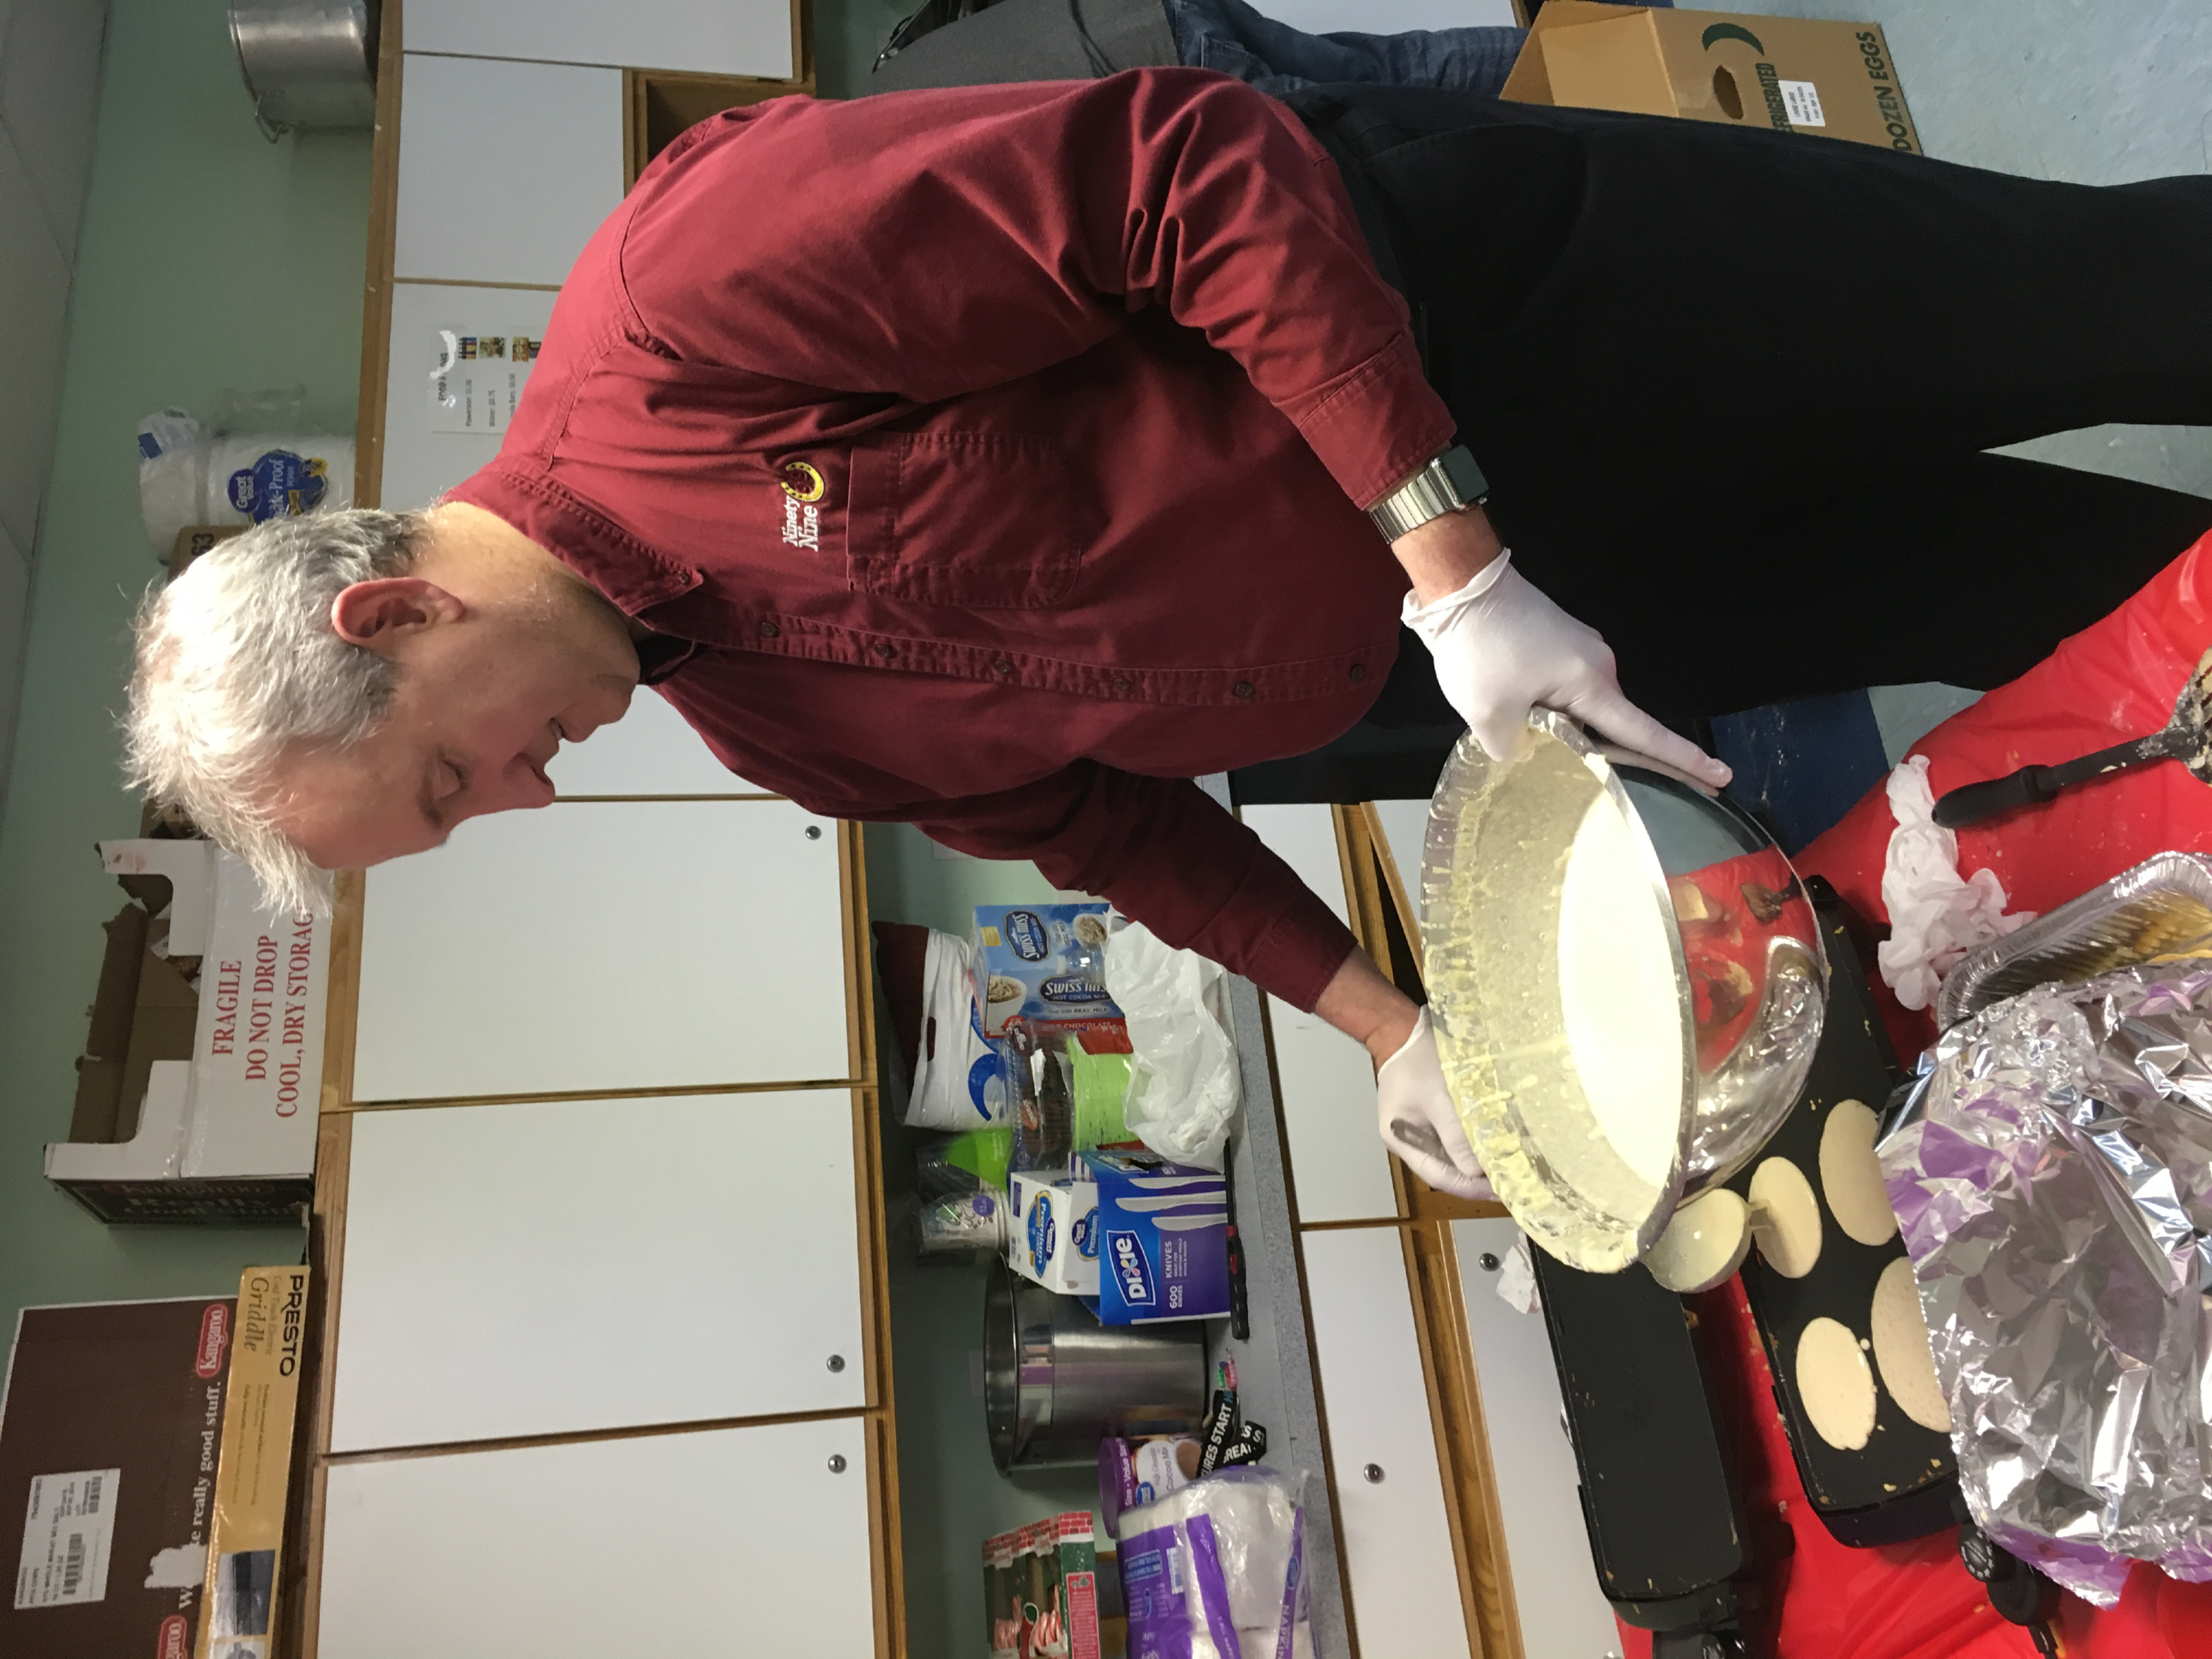 Martin McSheffery, 99 Restaurant assistant manager, makes pancakes at the Ulbrich Boys & Girls Club